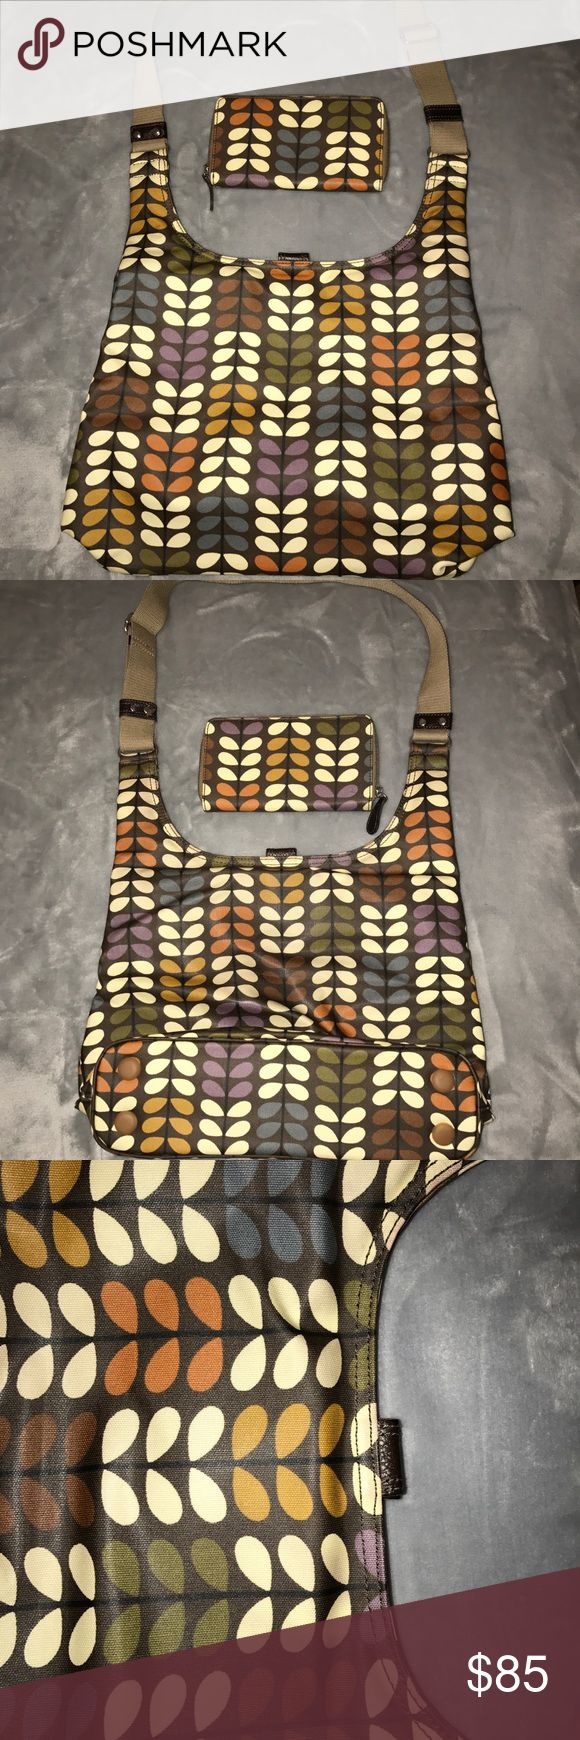 Orla Kiely Midi Sling & Wallet Condition: Good. Wallet Included. There is some denim transfer on the back of the bag at the top as shown in the photos. Orla Kiely Bags Crossbody Bags